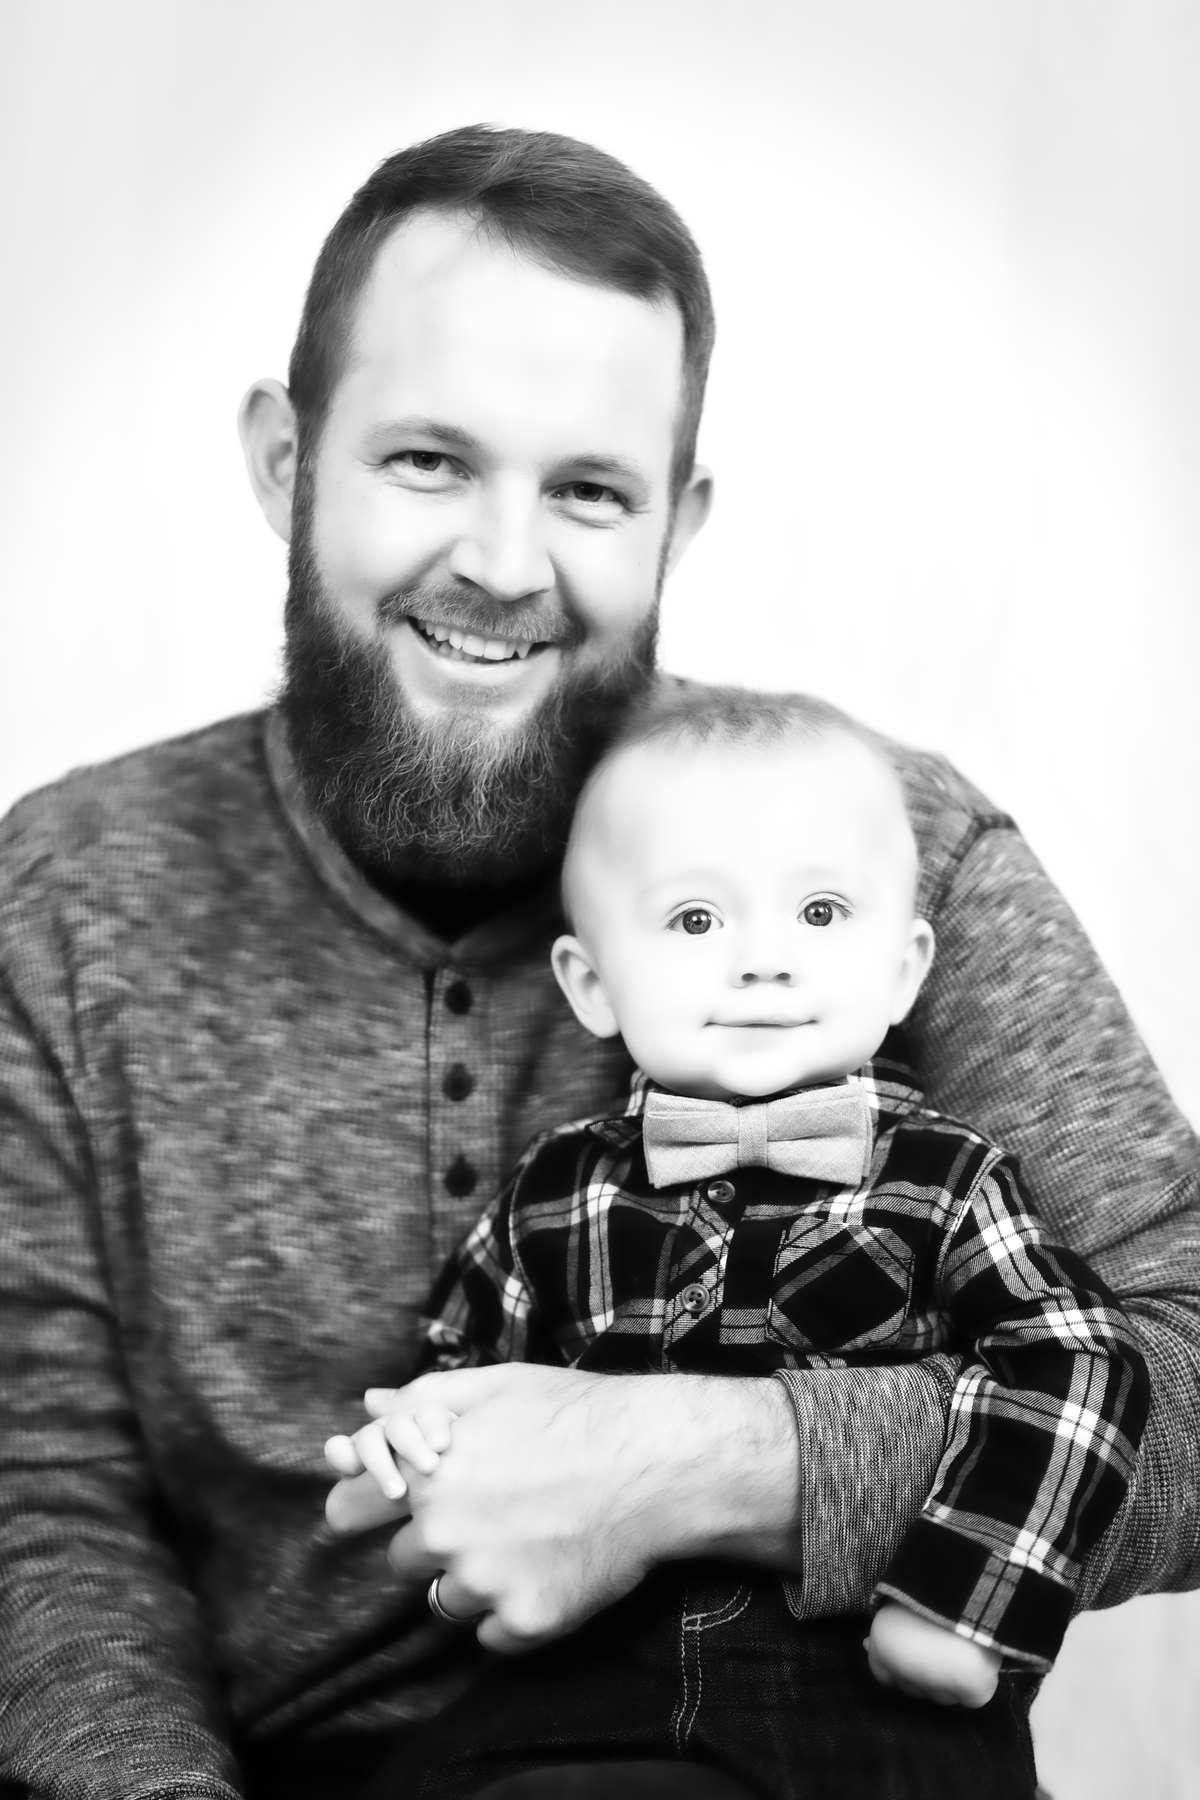 Dad and Baby looking so cute!